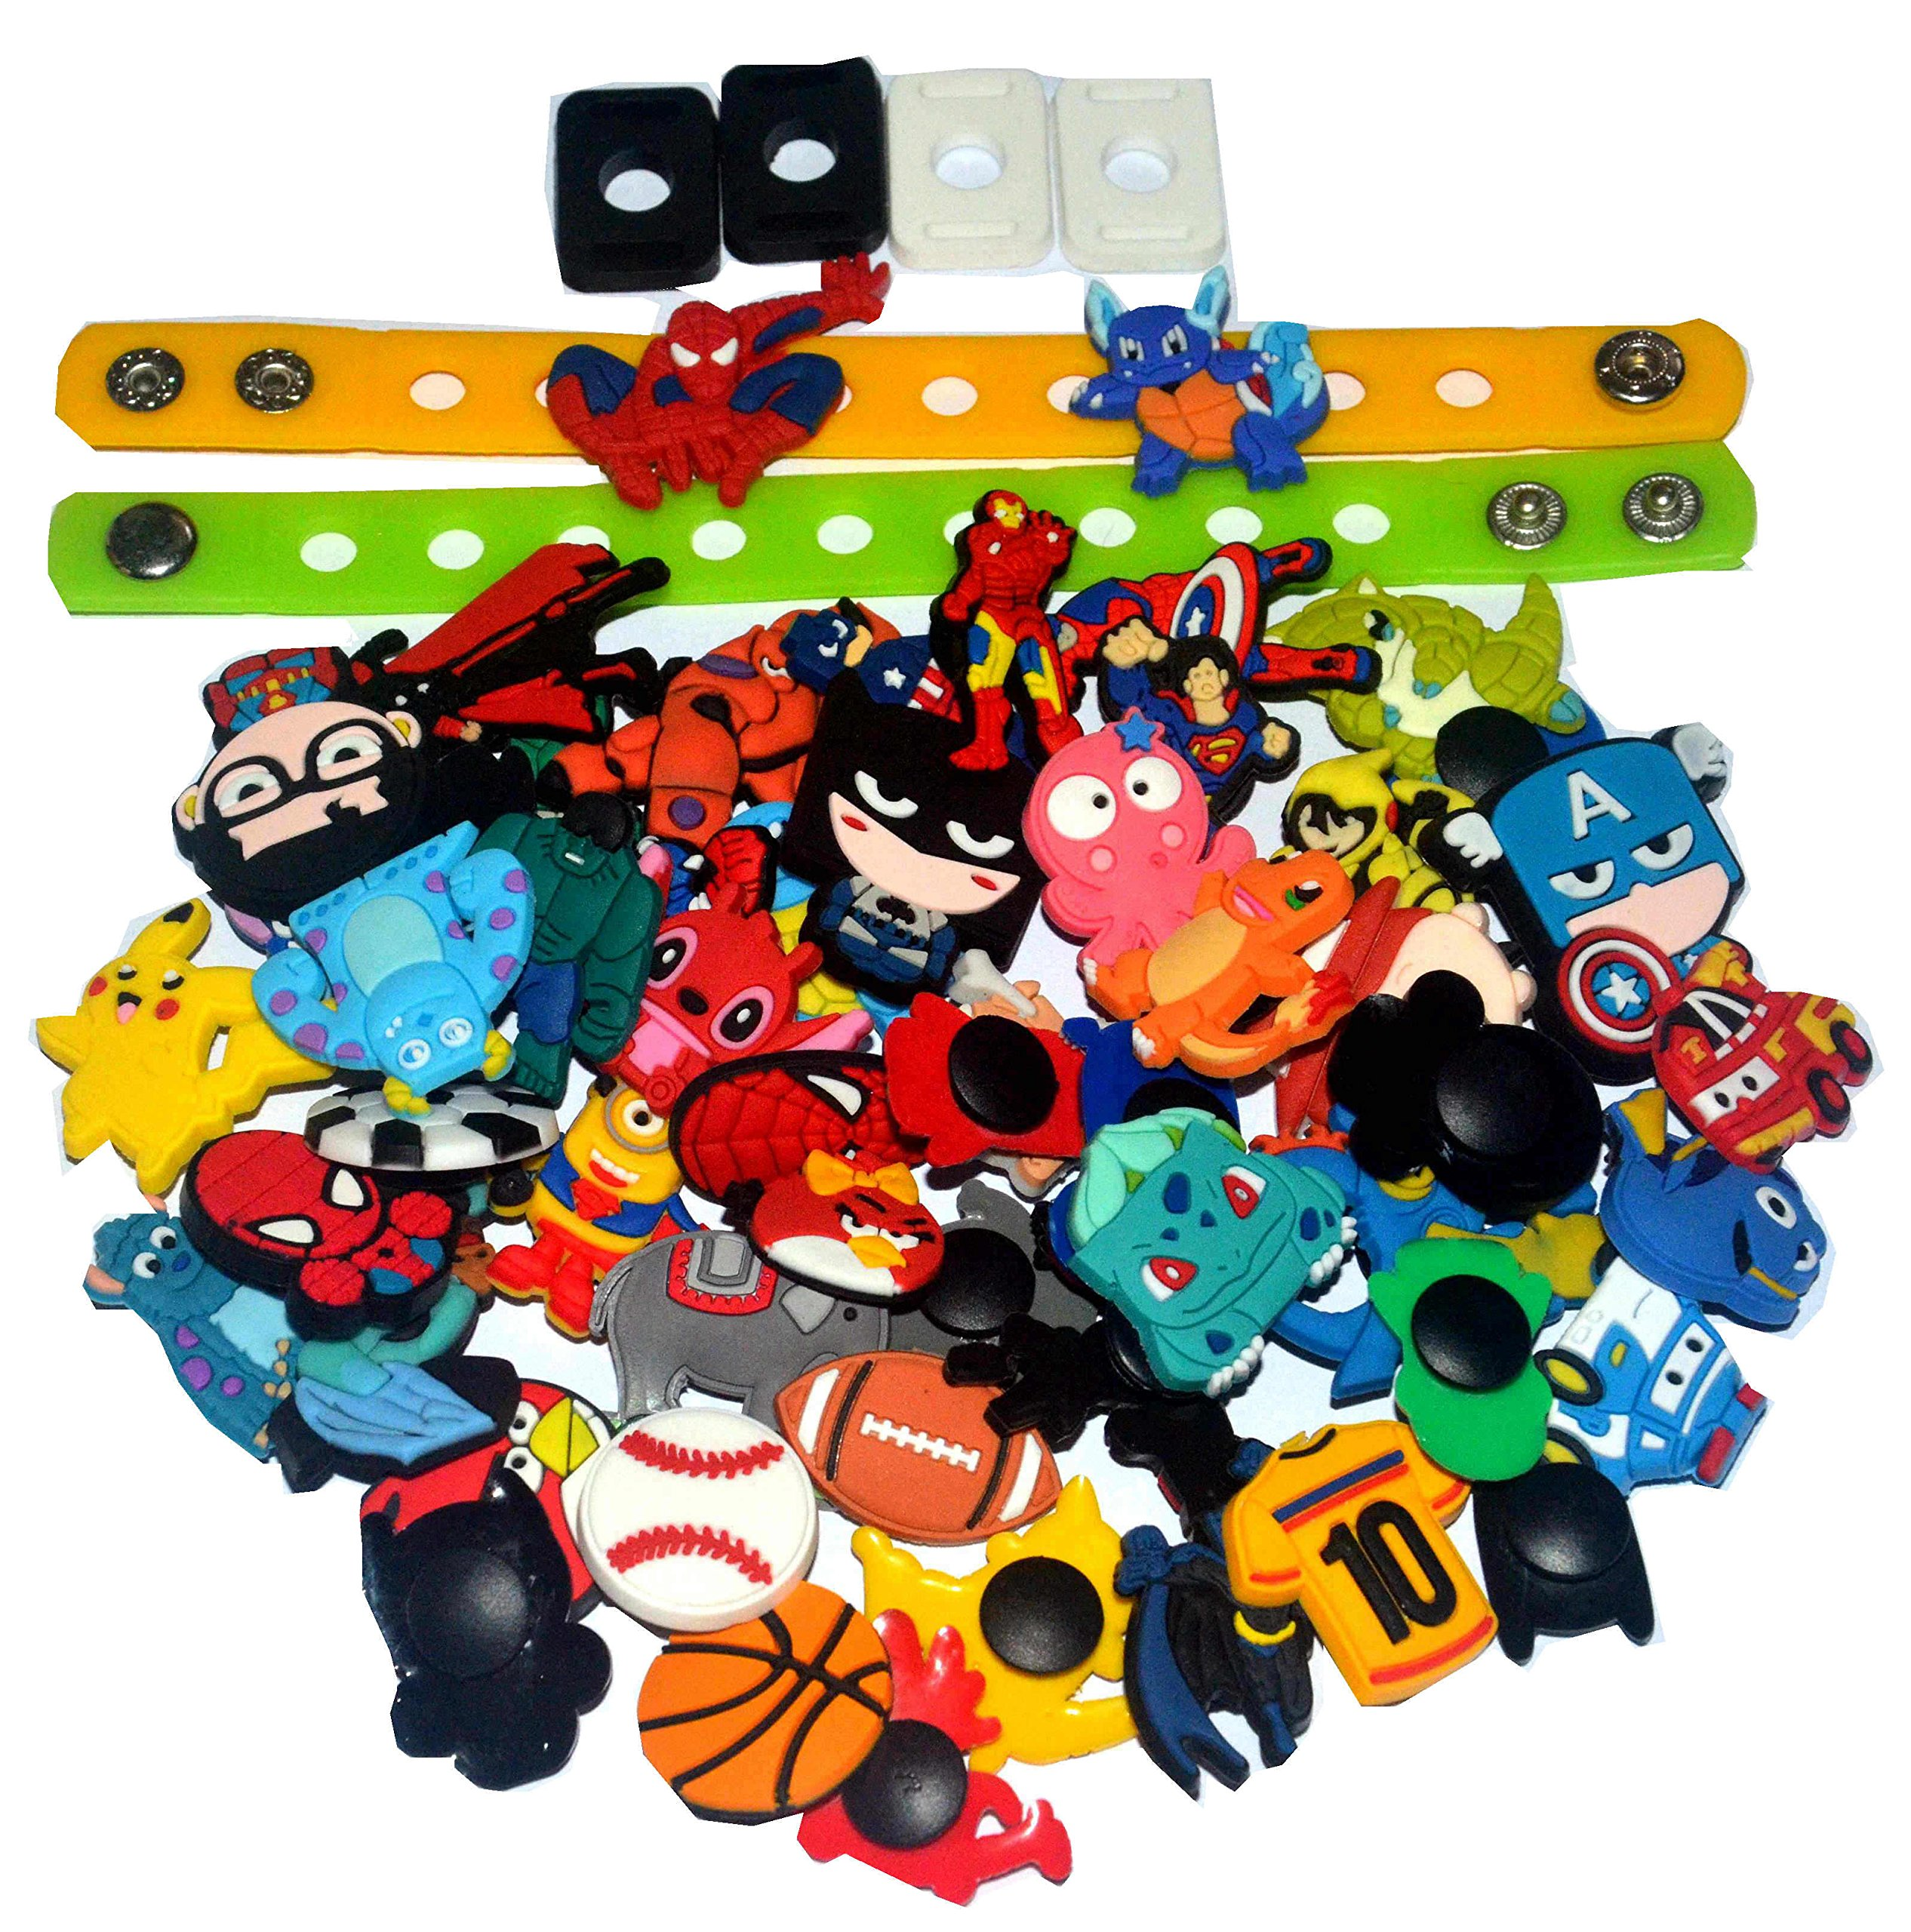 85c8fd159 Get Quotations · Lot of 55 PVC Different Shoe Charms for Croc   Jibbitz  Bands Bracelet Wristband for Boys